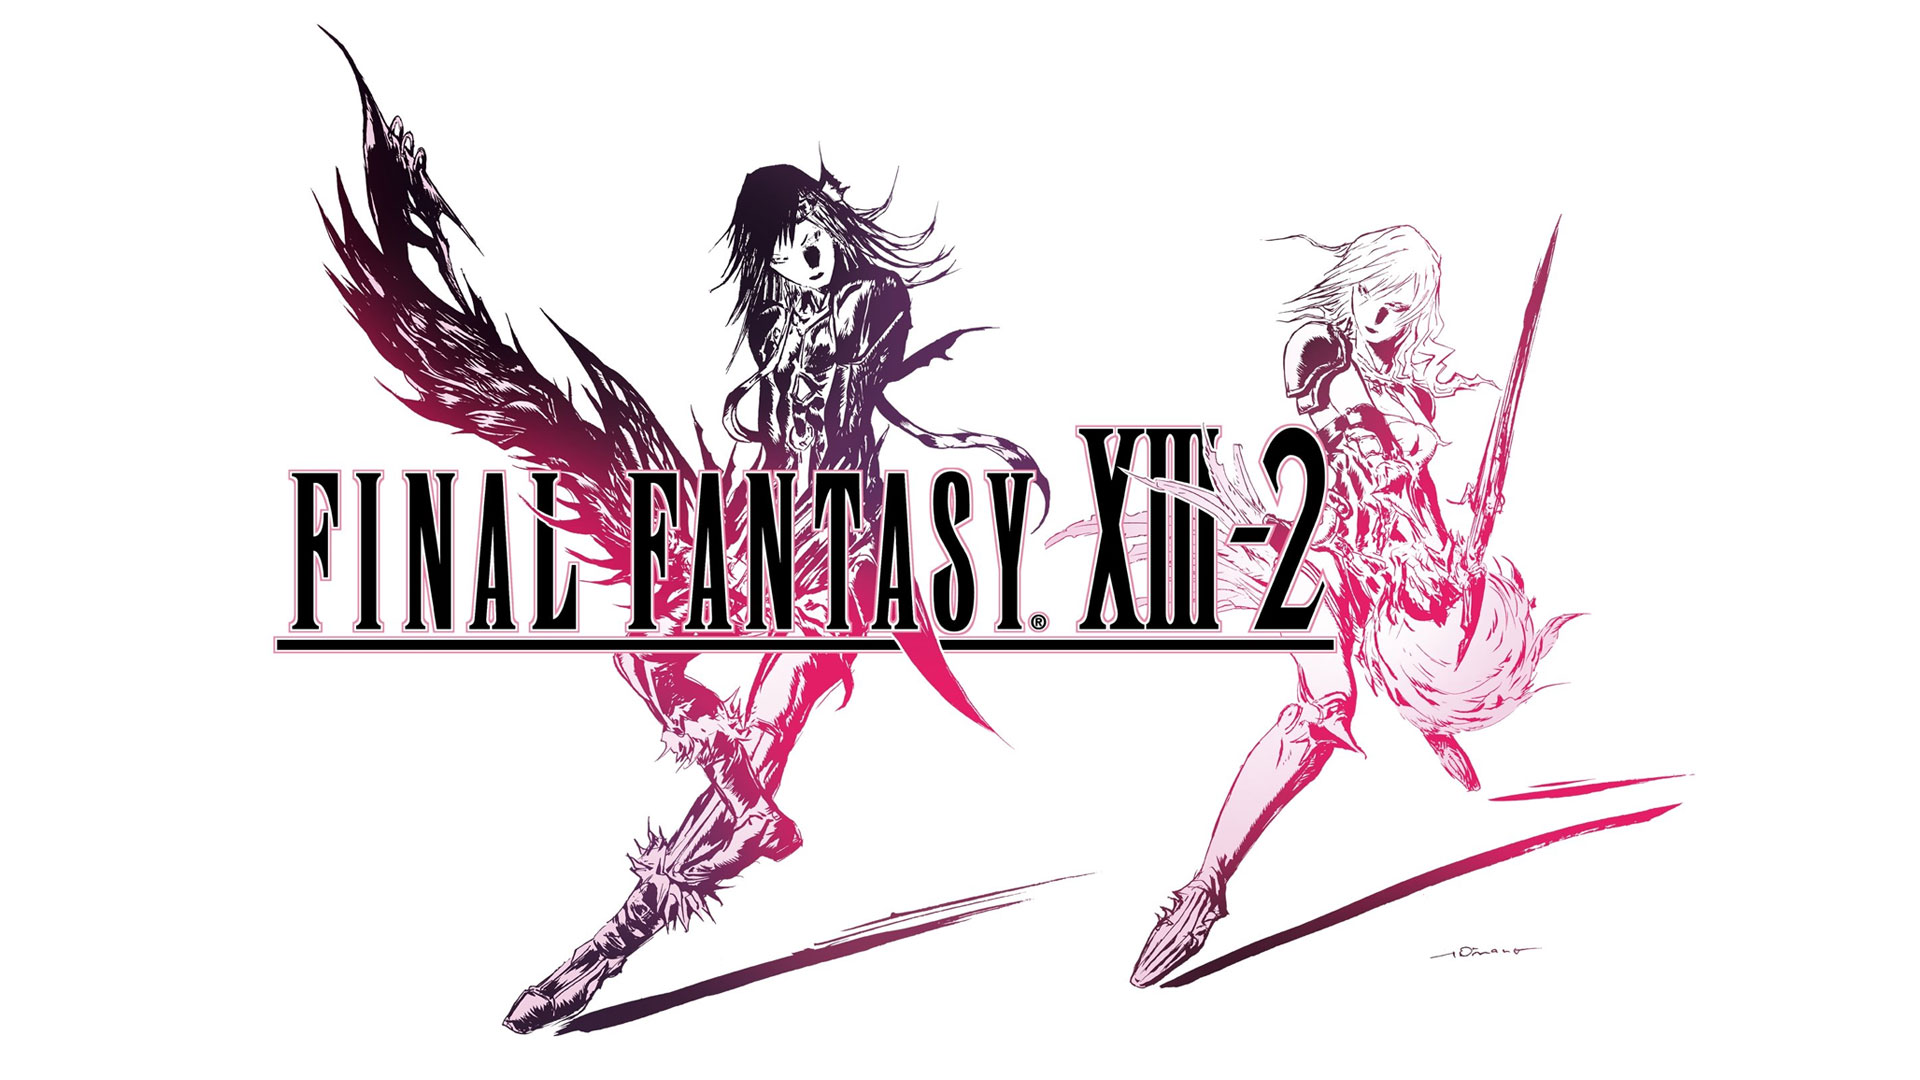 3 final fantasy x 13-2 wallpapers and themepack for windows 7